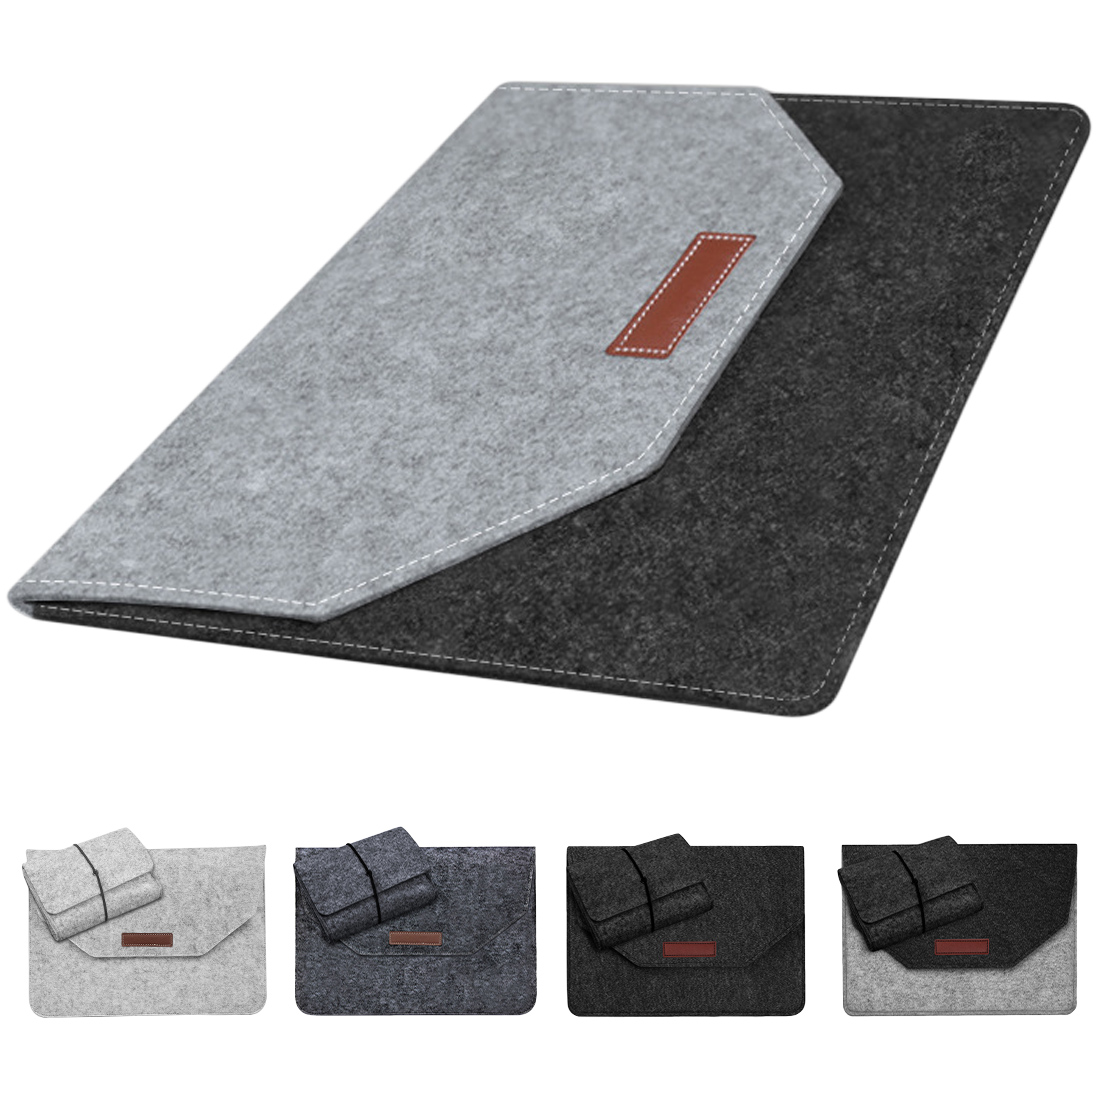 New Fashion Soft Bussiness Wood Felt Sleeve Bag Case For Apple Macbook Air Pro Retina 11 13 15 Laptop For Mac Book 13.3 Inch